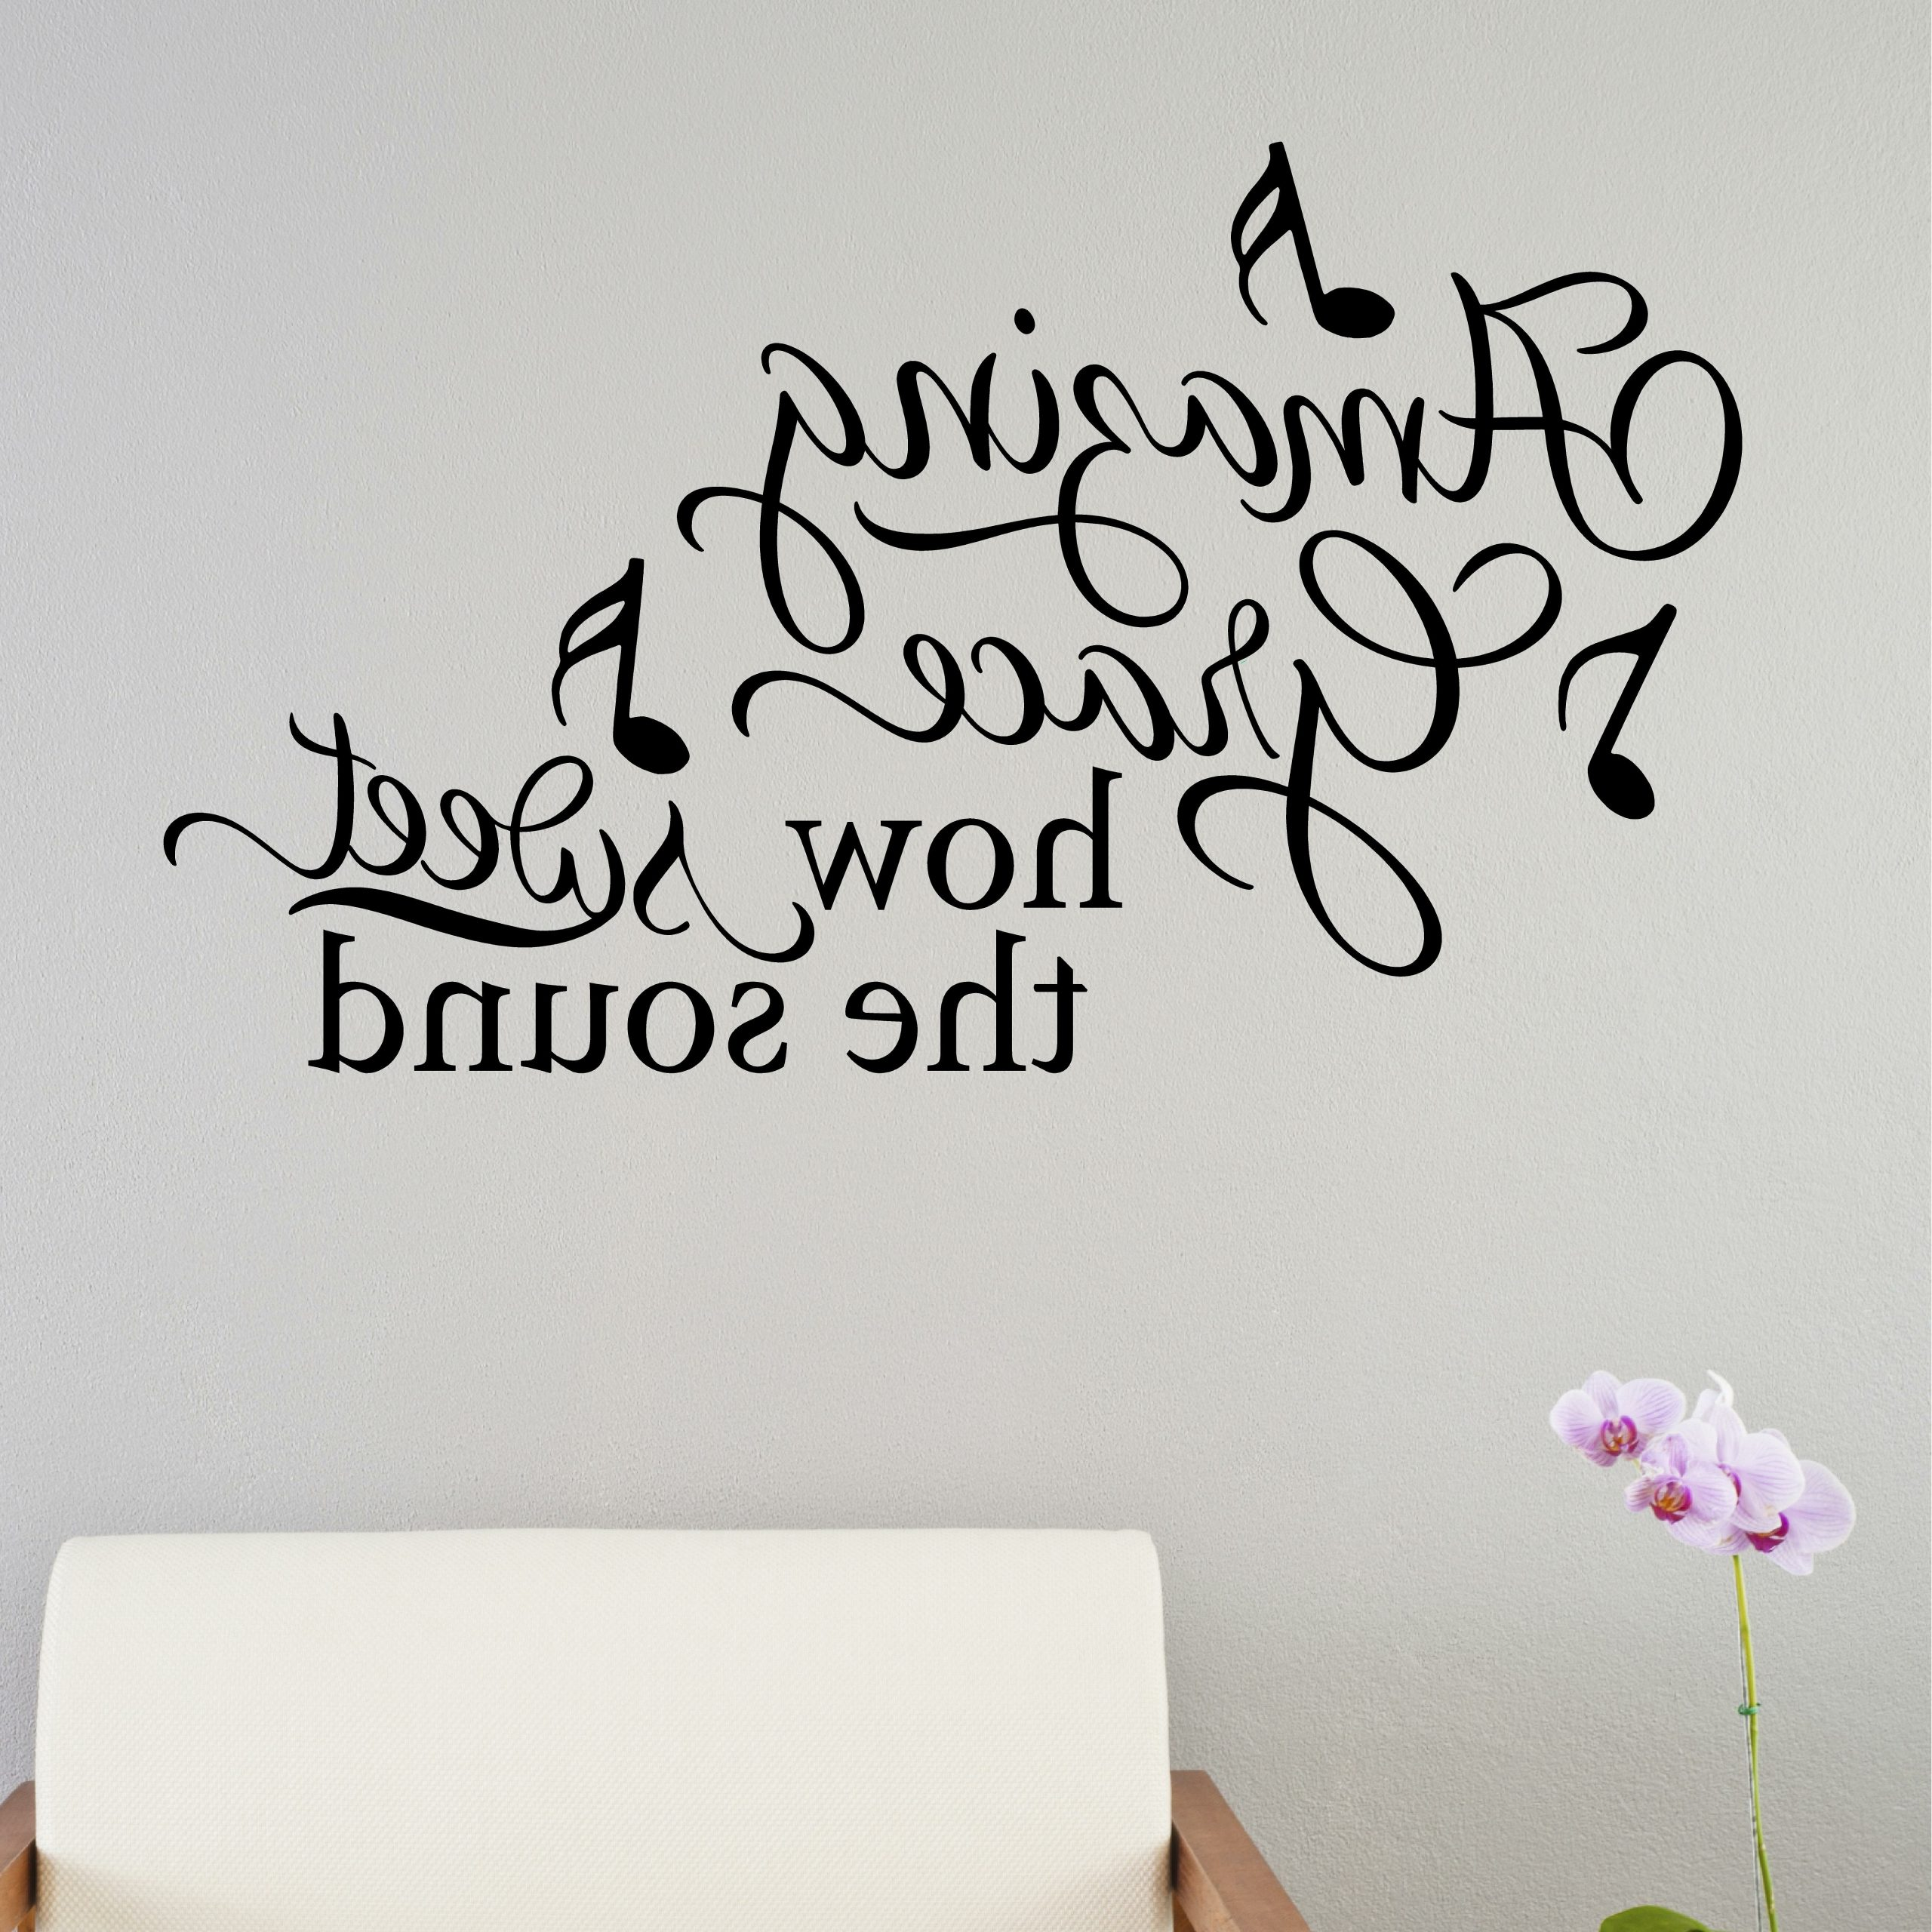 Amazing Grace How Sweet The Sound Wall Decal In Latest Blended Fabric Amazing Grace Wall Hangings (View 2 of 20)